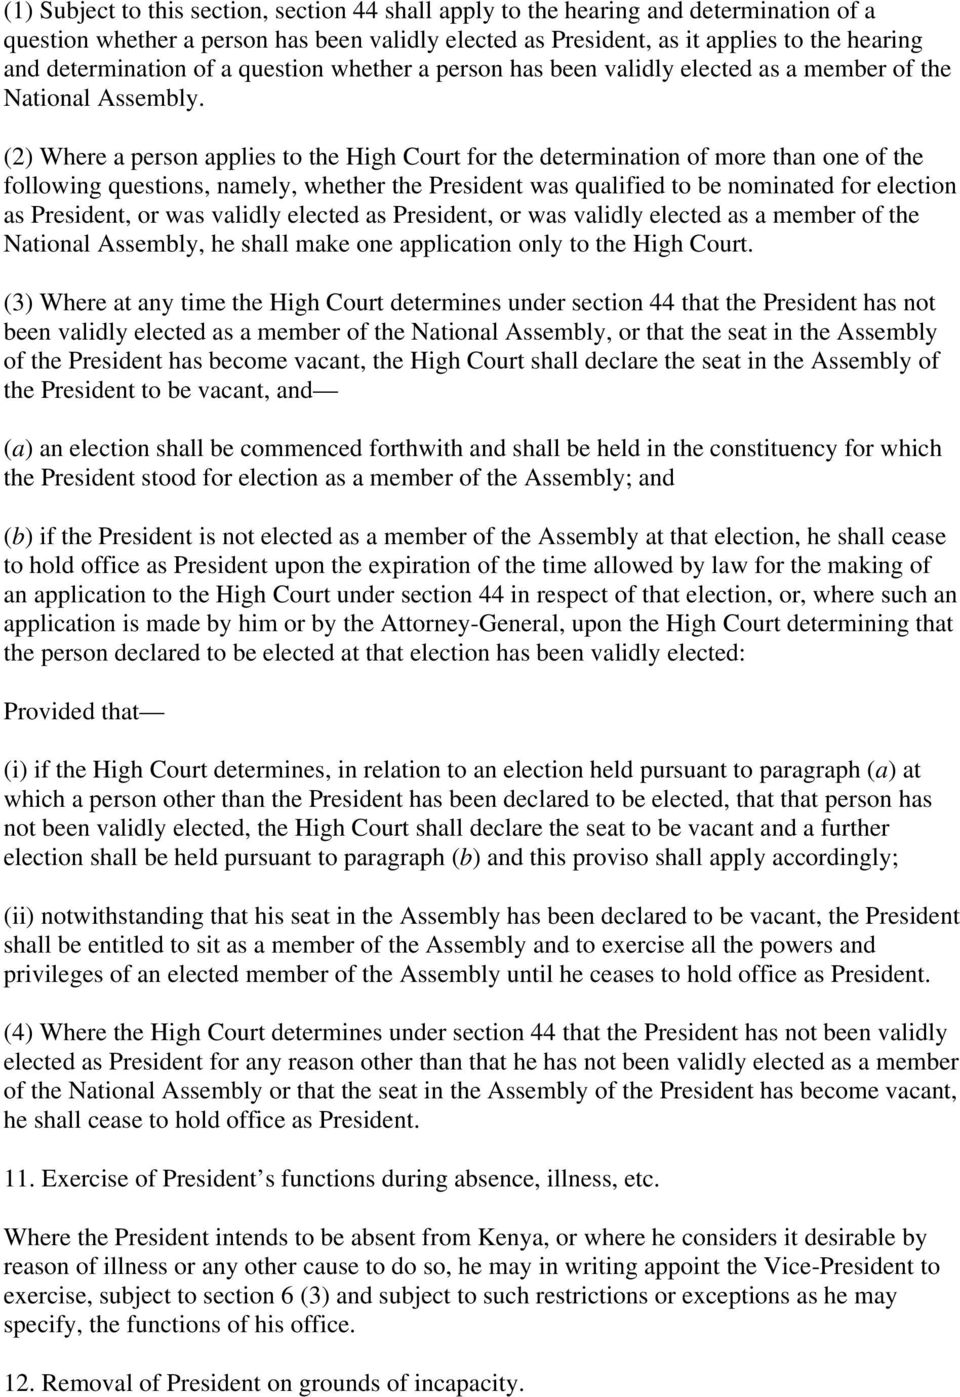 (2) Where a person applies to the High Court for the determination of more than one of the following questions, namely, whether the President was qualified to be nominated for election as President,